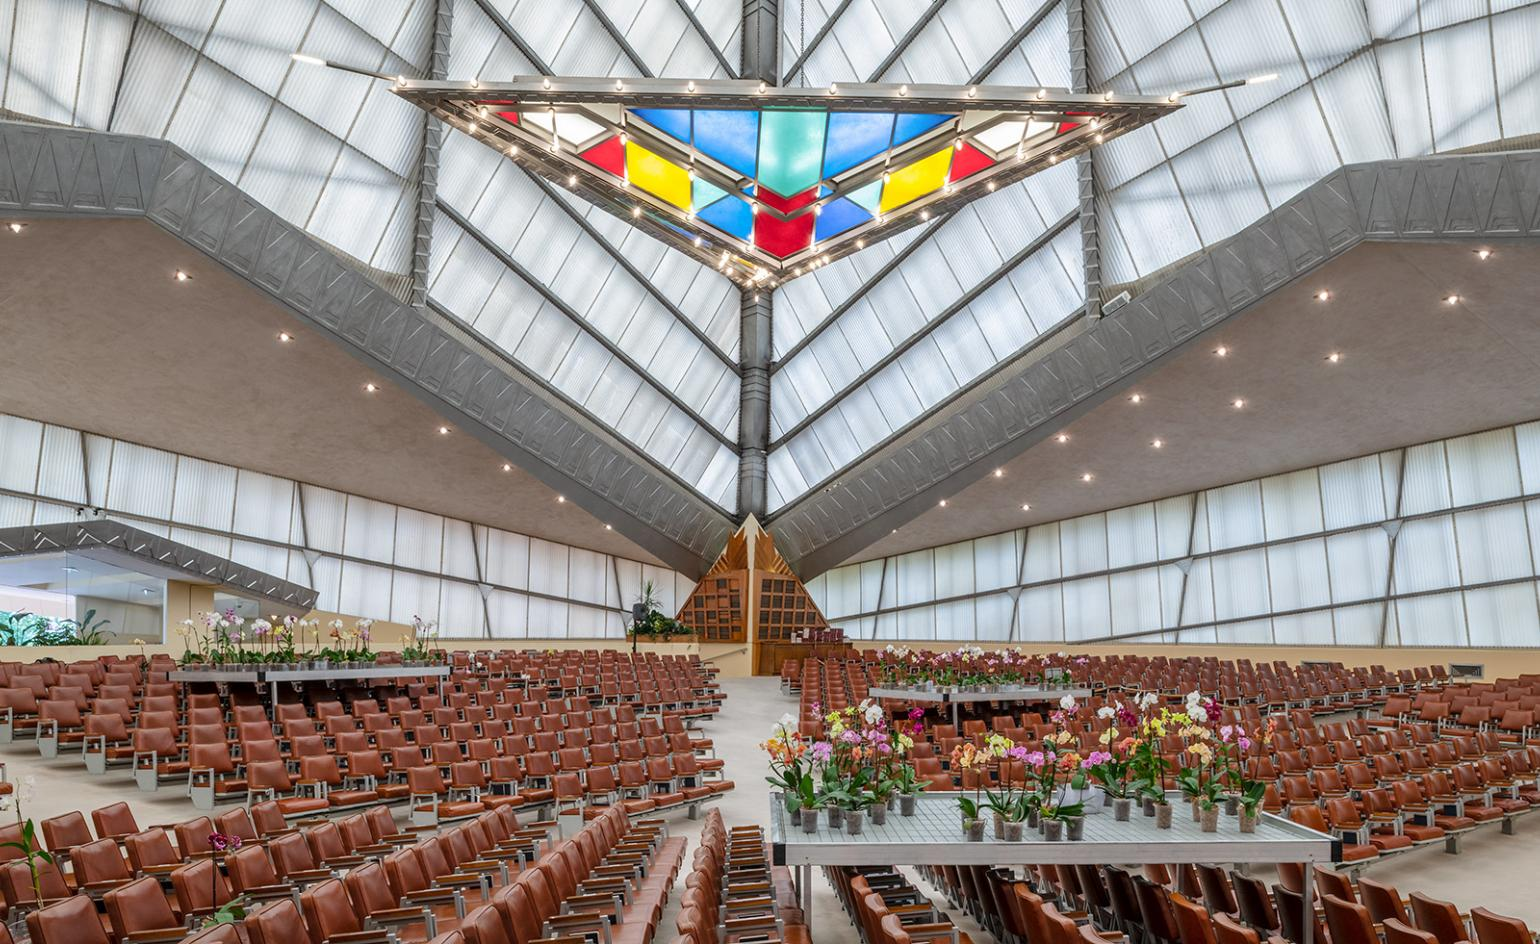 The Philadelphia artist activating Frank Lloyd Wright's only synagogue